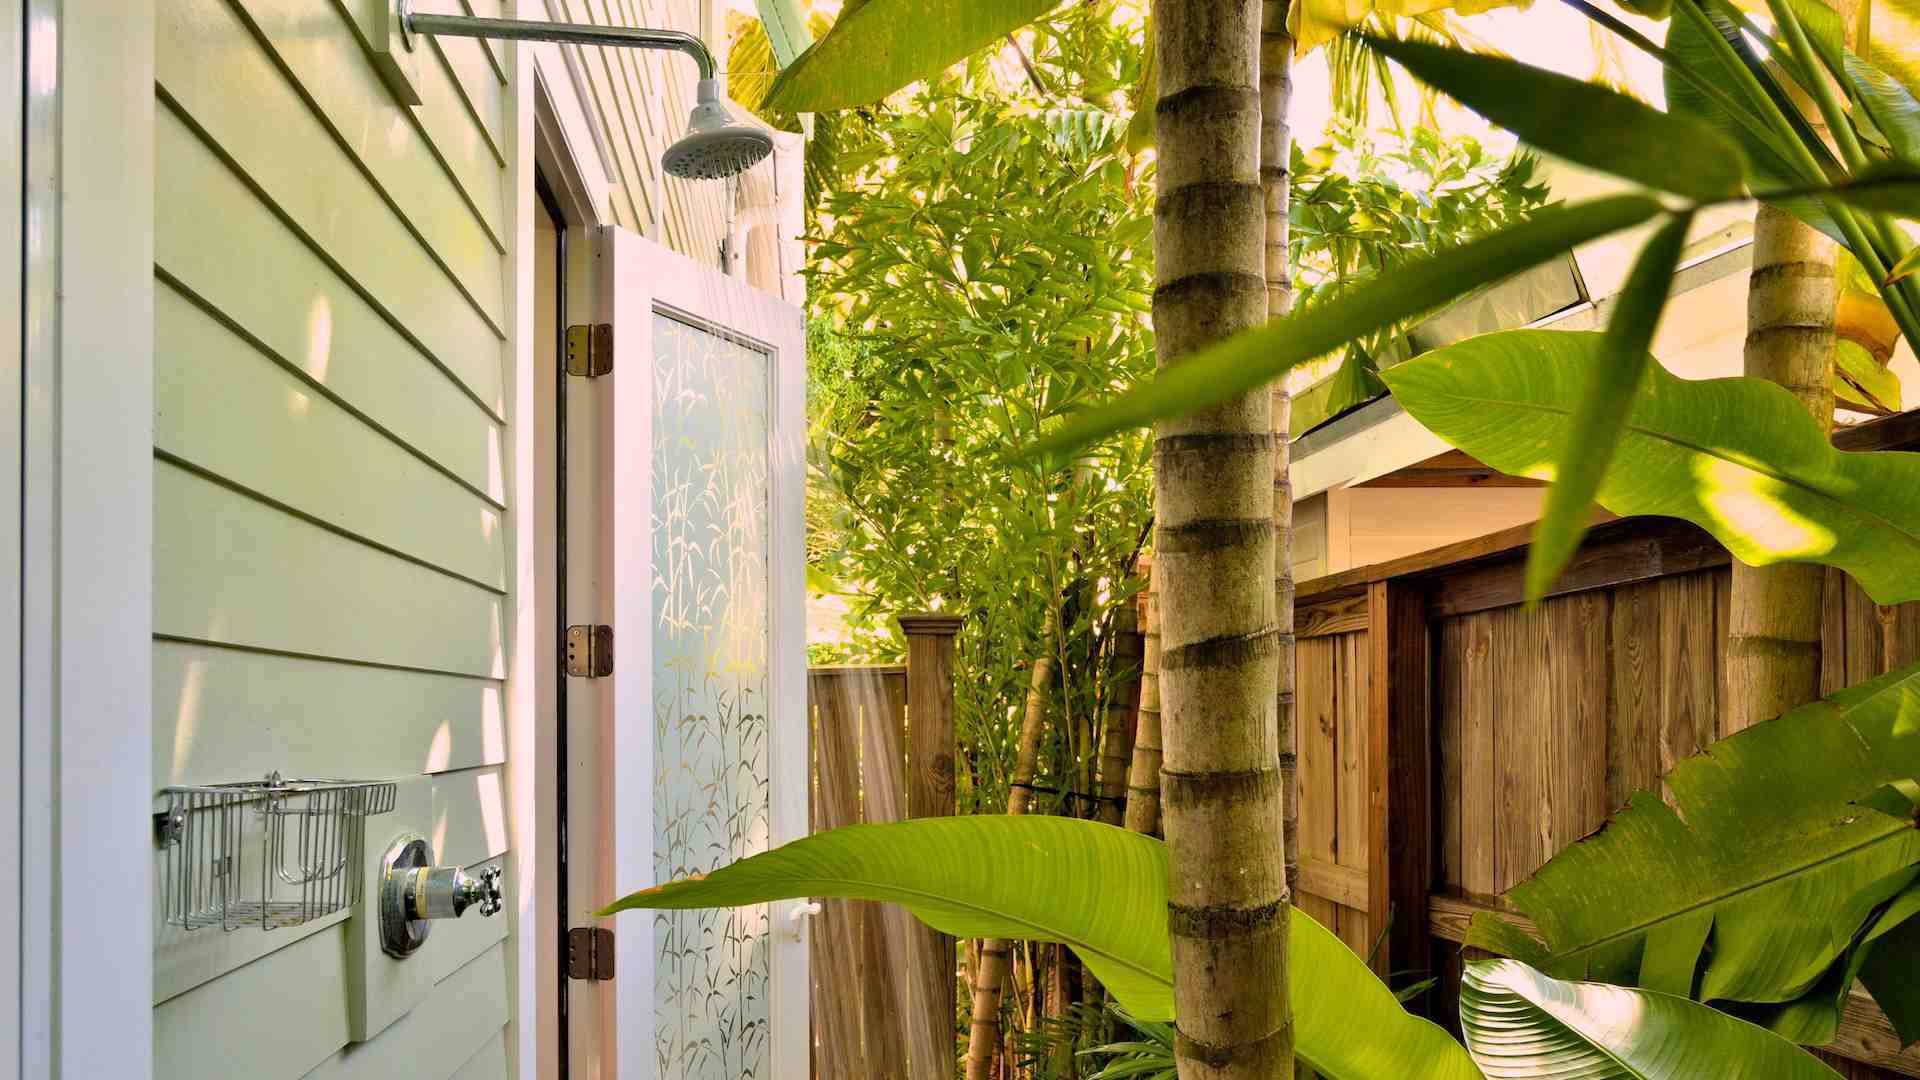 The master bathroom even has its own private outdoor shower...